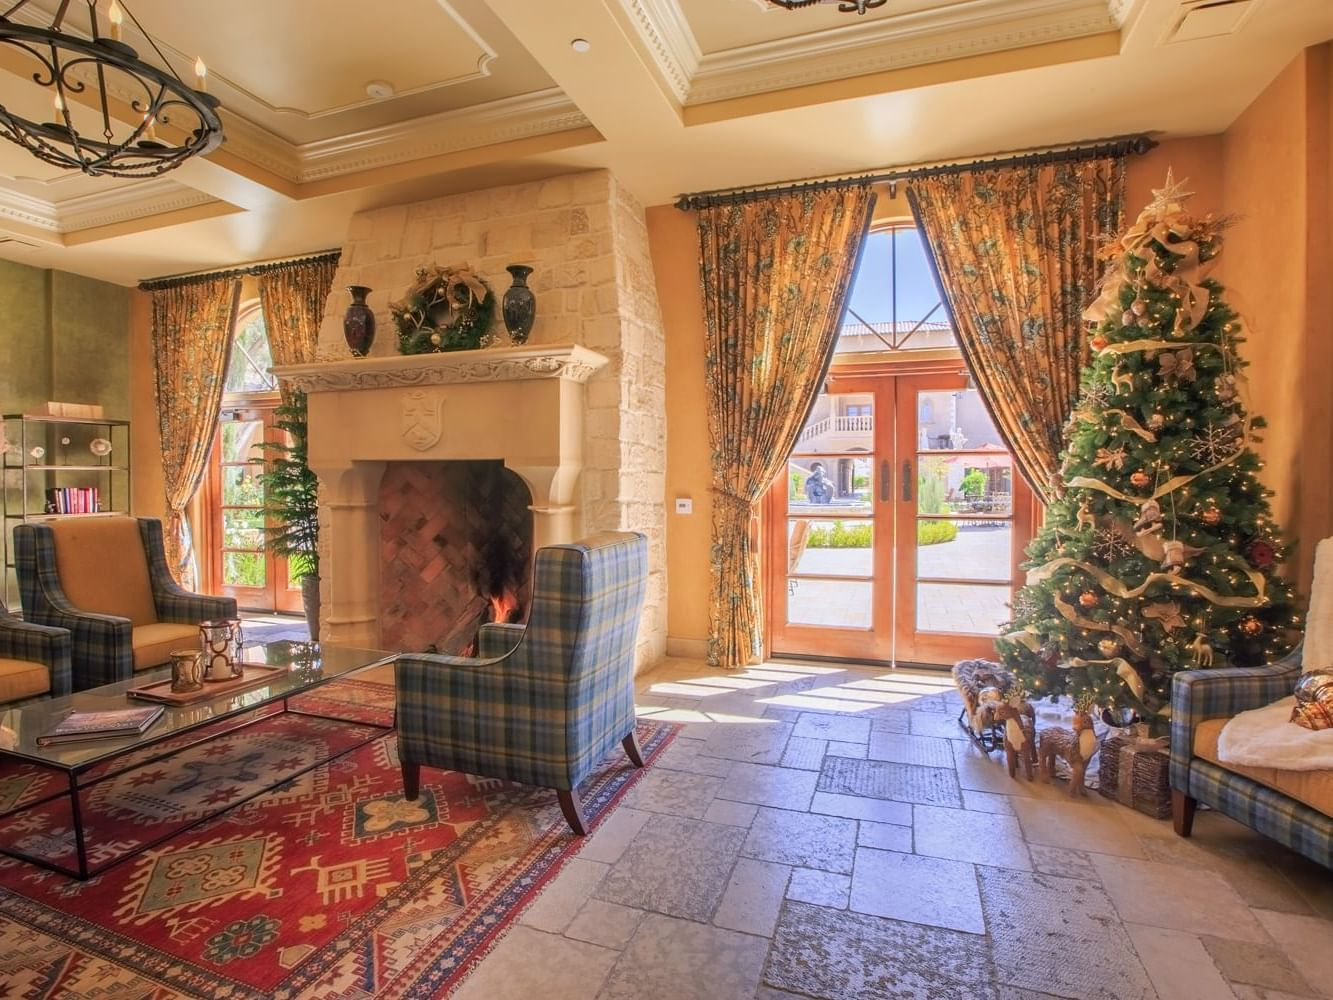 Sequoia room decorated with Christmas tree